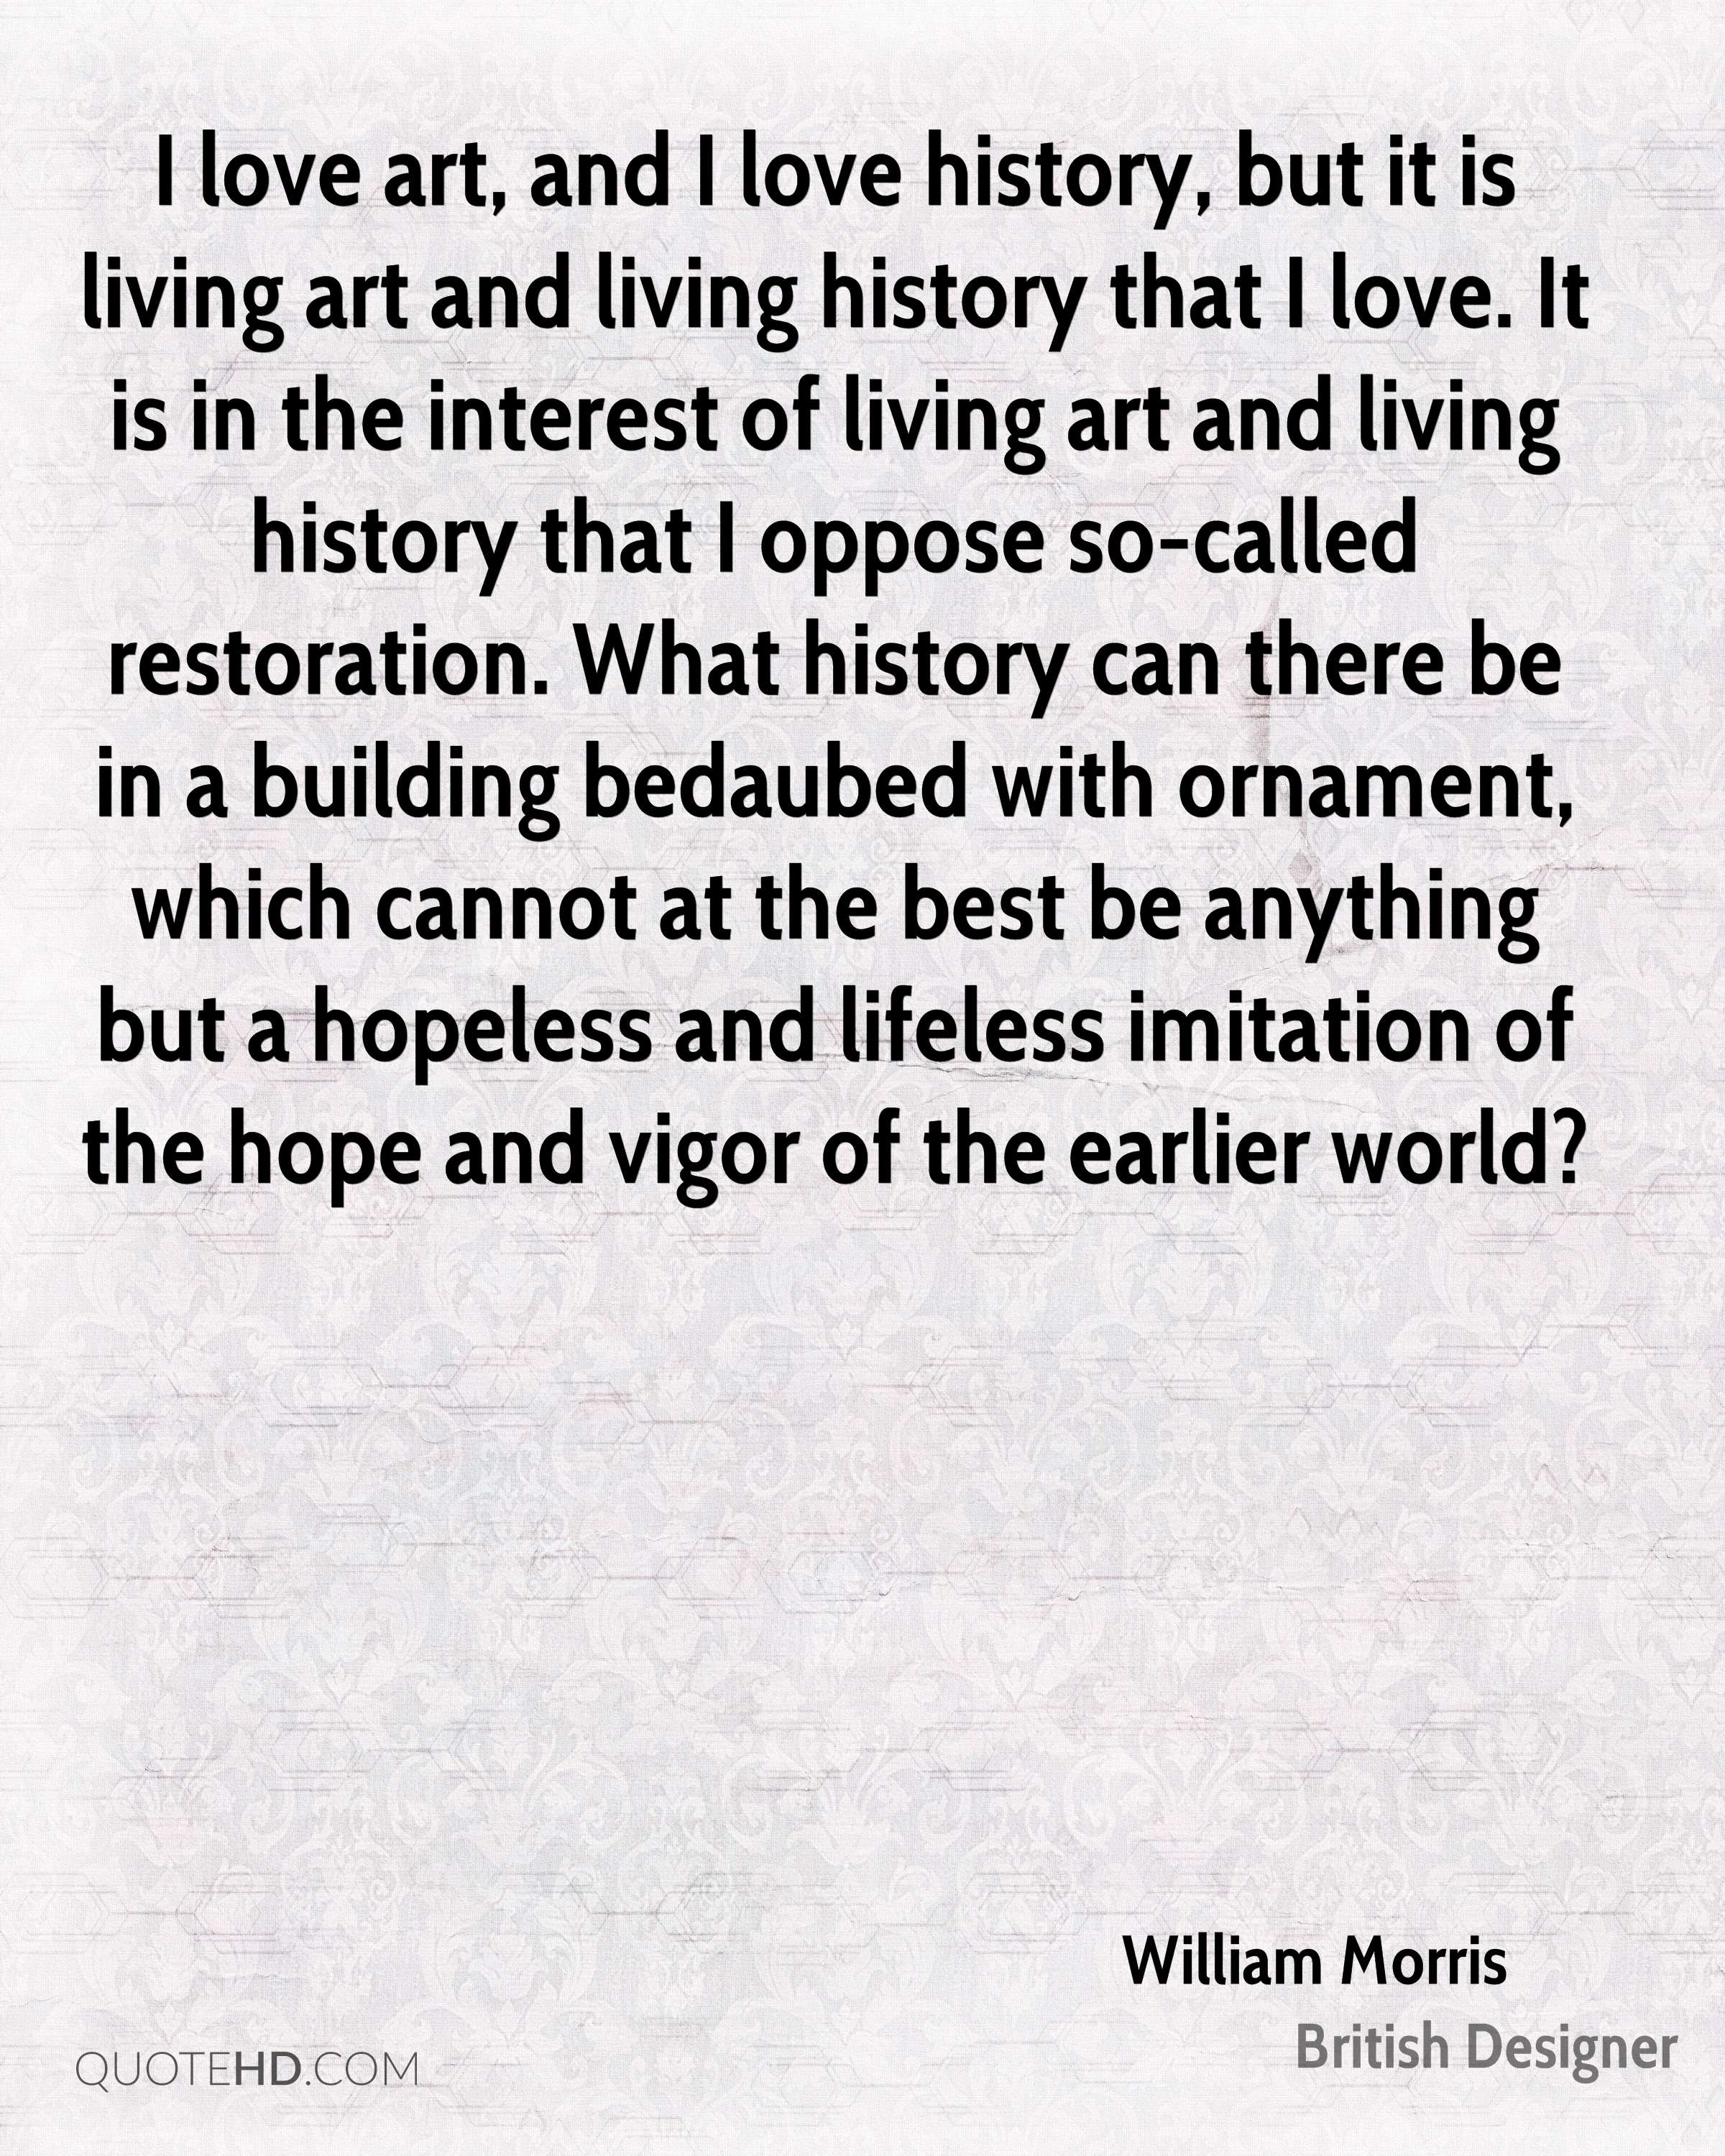 I love art, and I love history, but it is living art and living history that I love. It is in the interest of living art and living history that I oppose so-called restoration. What history can there be in a building bedaubed with ornament, which cannot at the best be anything but a hopeless and lifeless imitation of the hope and vigor of the earlier world?